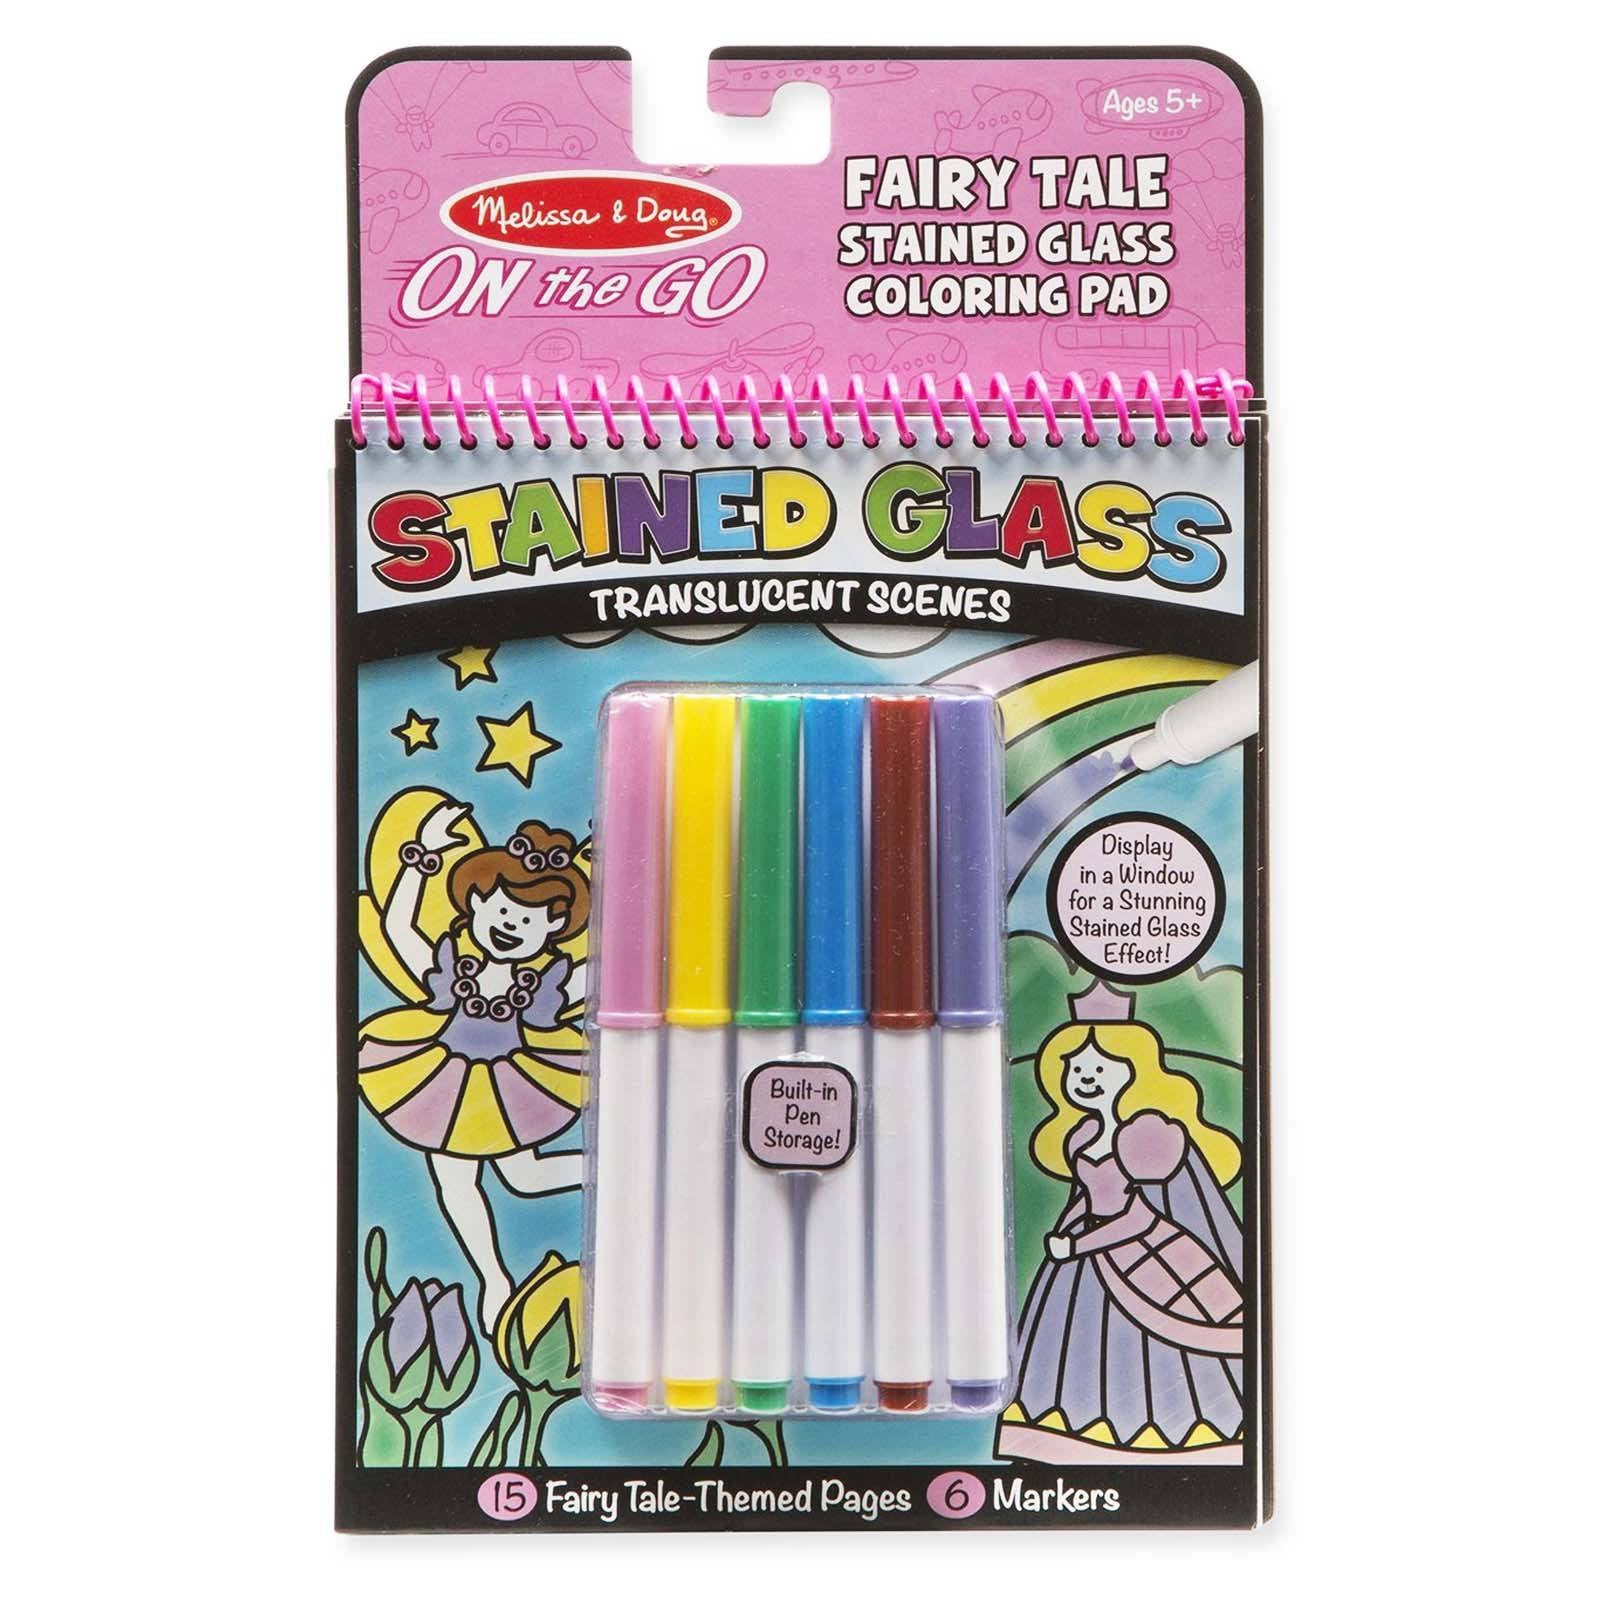 melissa and doug on the go fairy tale stained glass coloring pad - Melissa And Doug Coloring Book